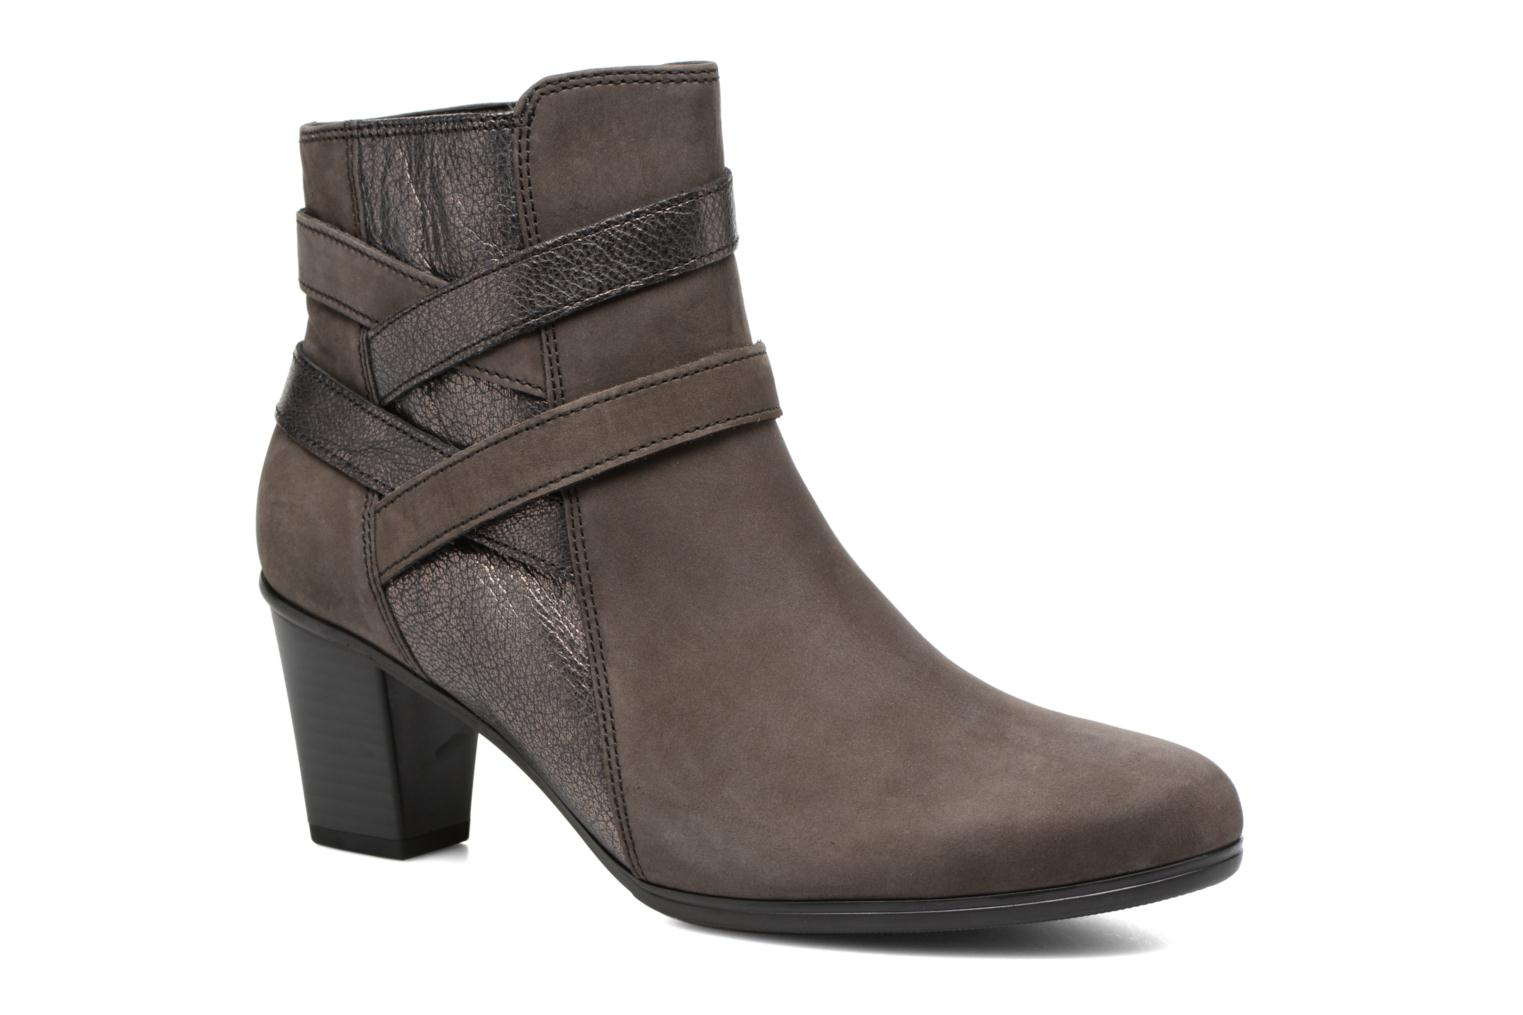 Marques Chaussure femme Gabor femme Finja Anthracite